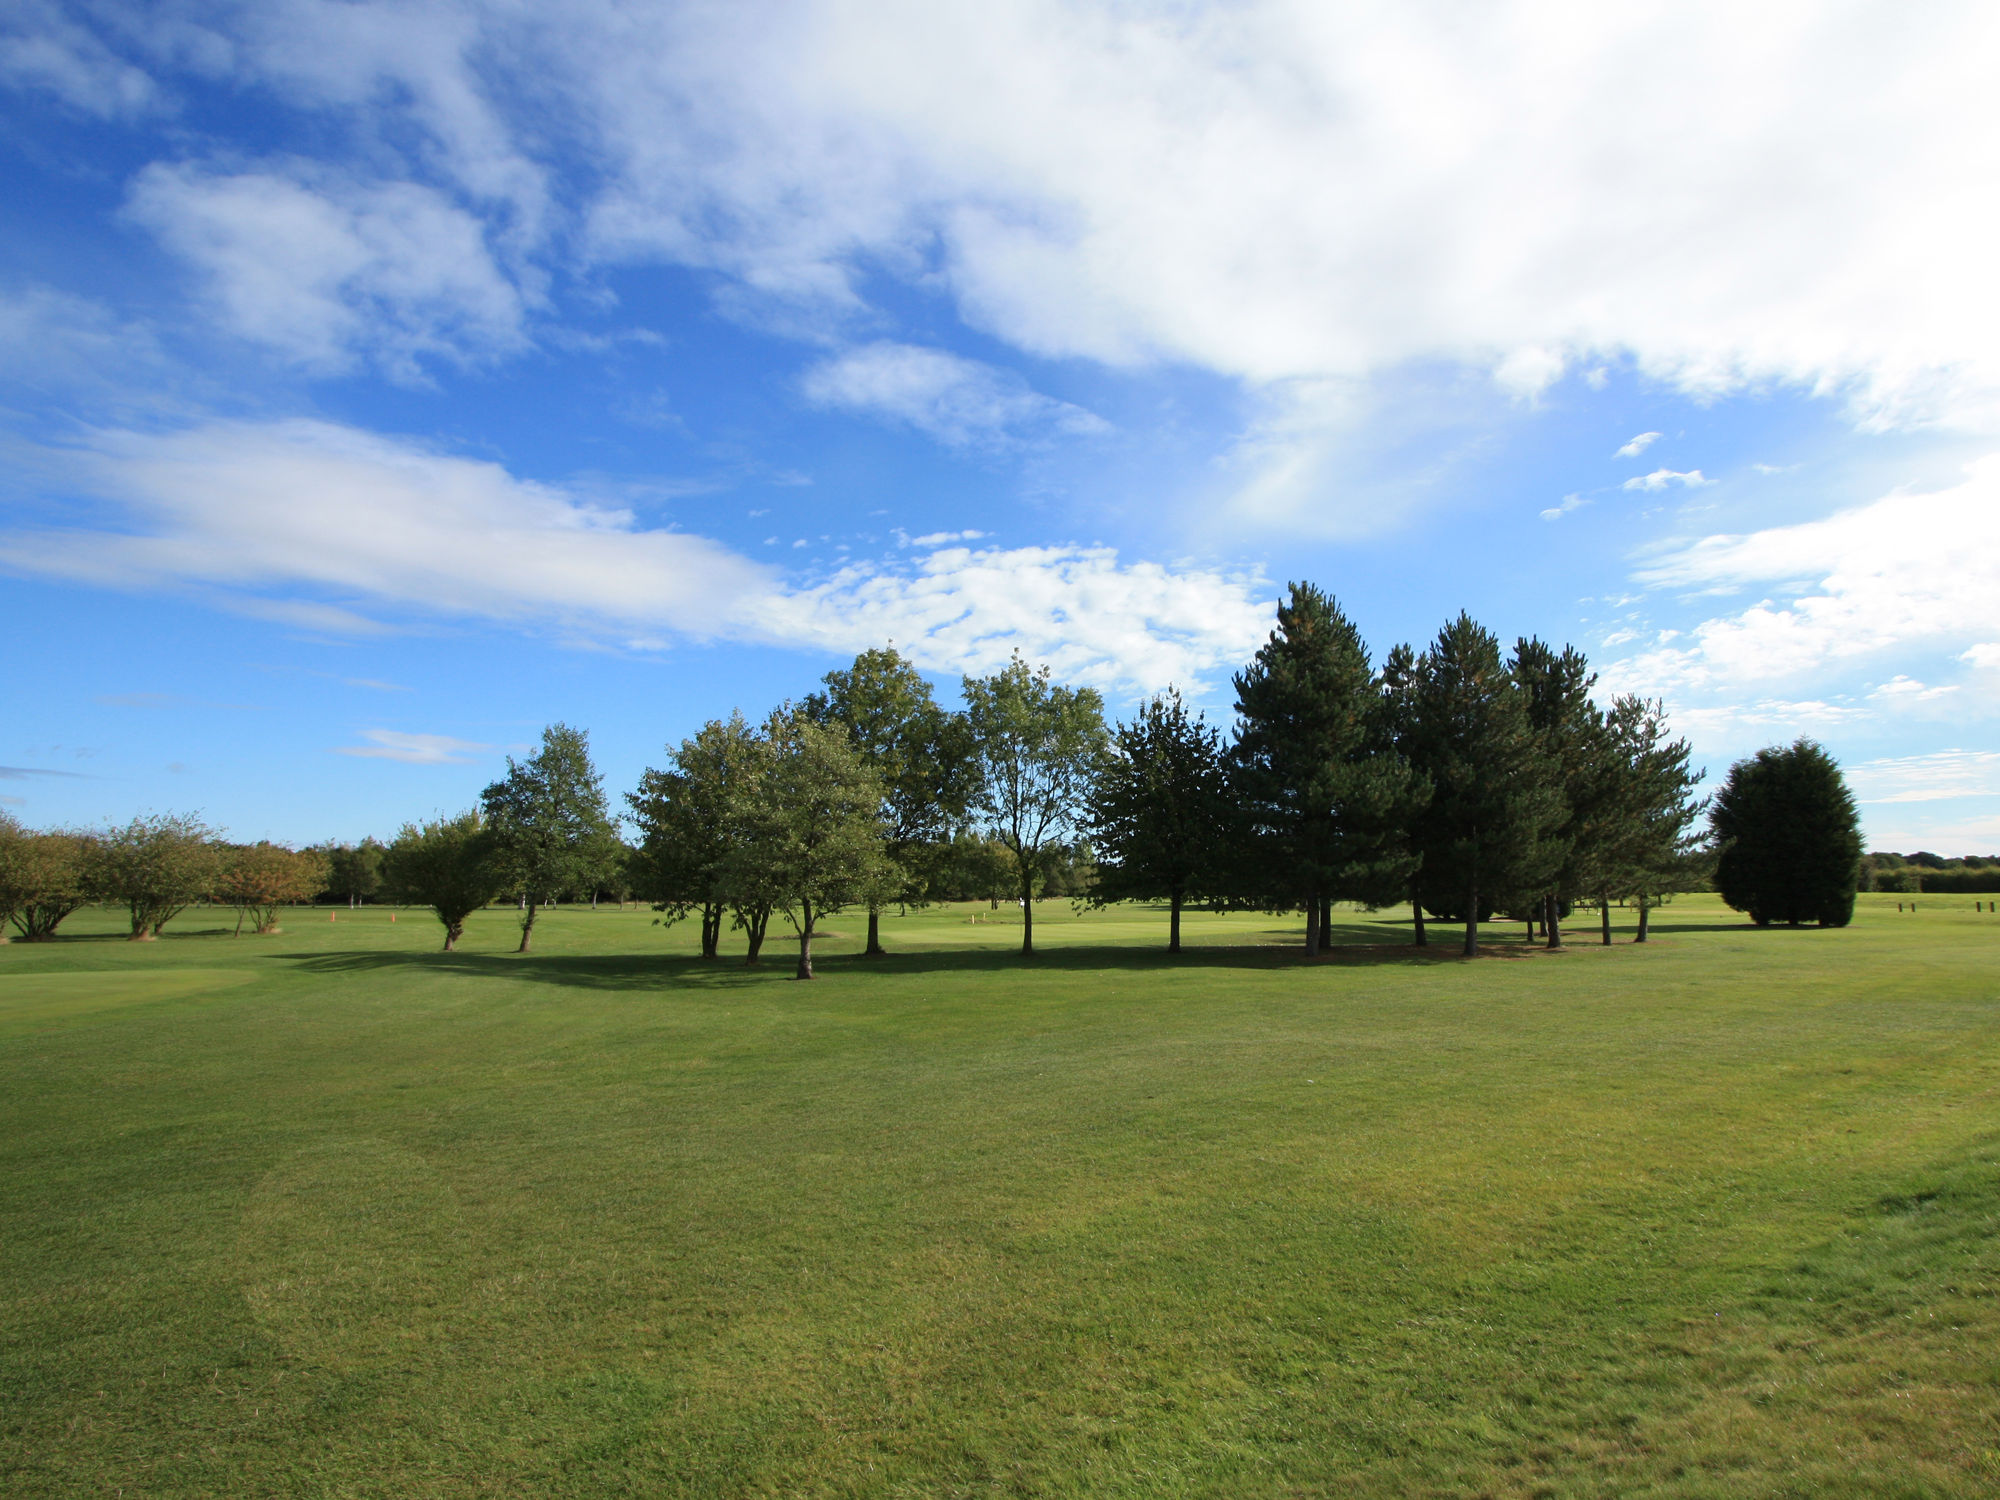 Boothferry park golf club cover picture